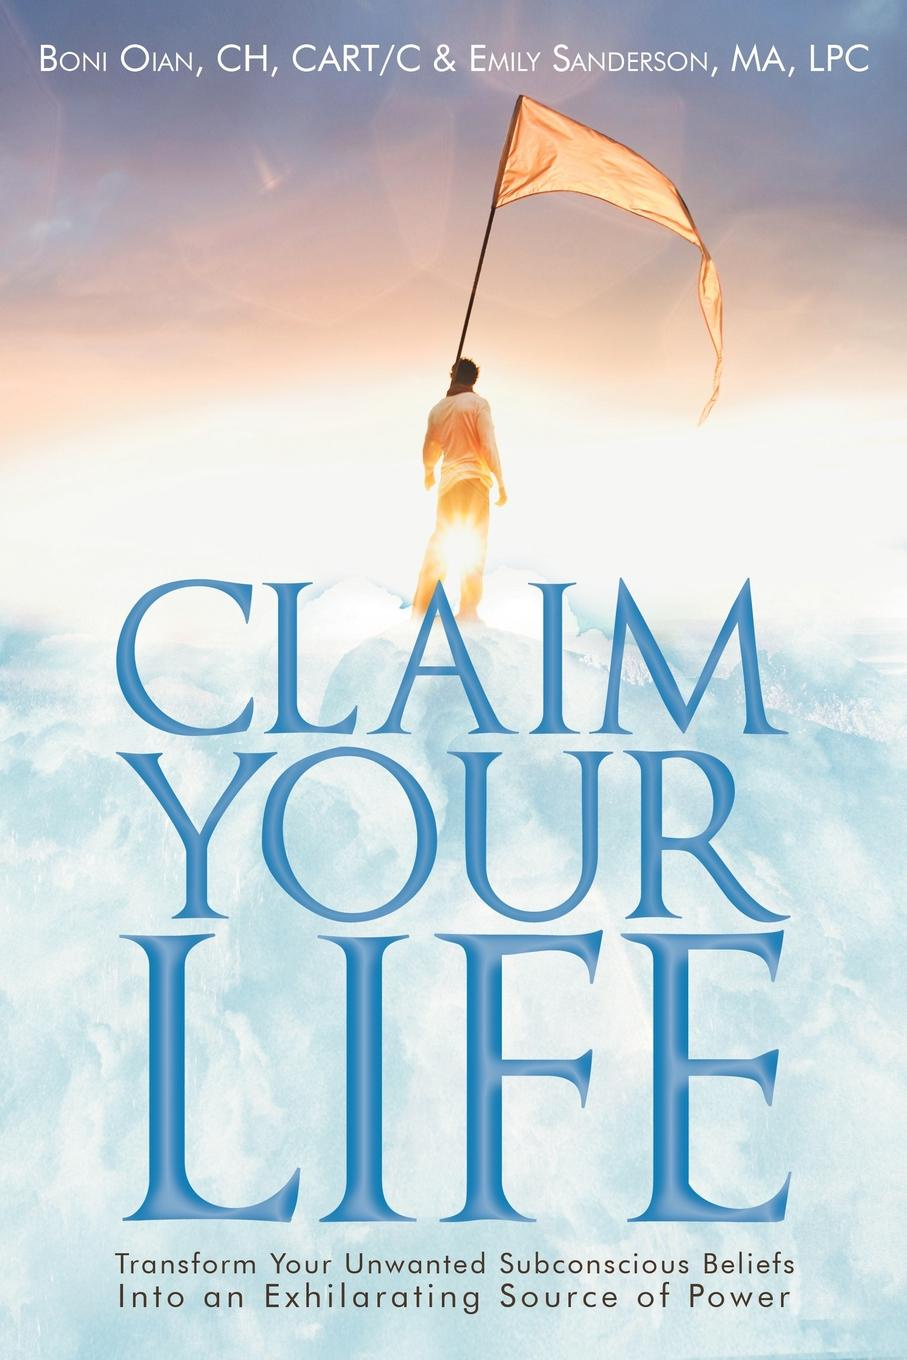 Boni Oian Ch Cart C., Emily Sanderson Ma Lpc Claim Your Life. Transform Your Unwanted Subconscious Beliefs Into an Exhilarating Source of Power mike george being beyond belief 30 beliefs you will have to kill before they kill you